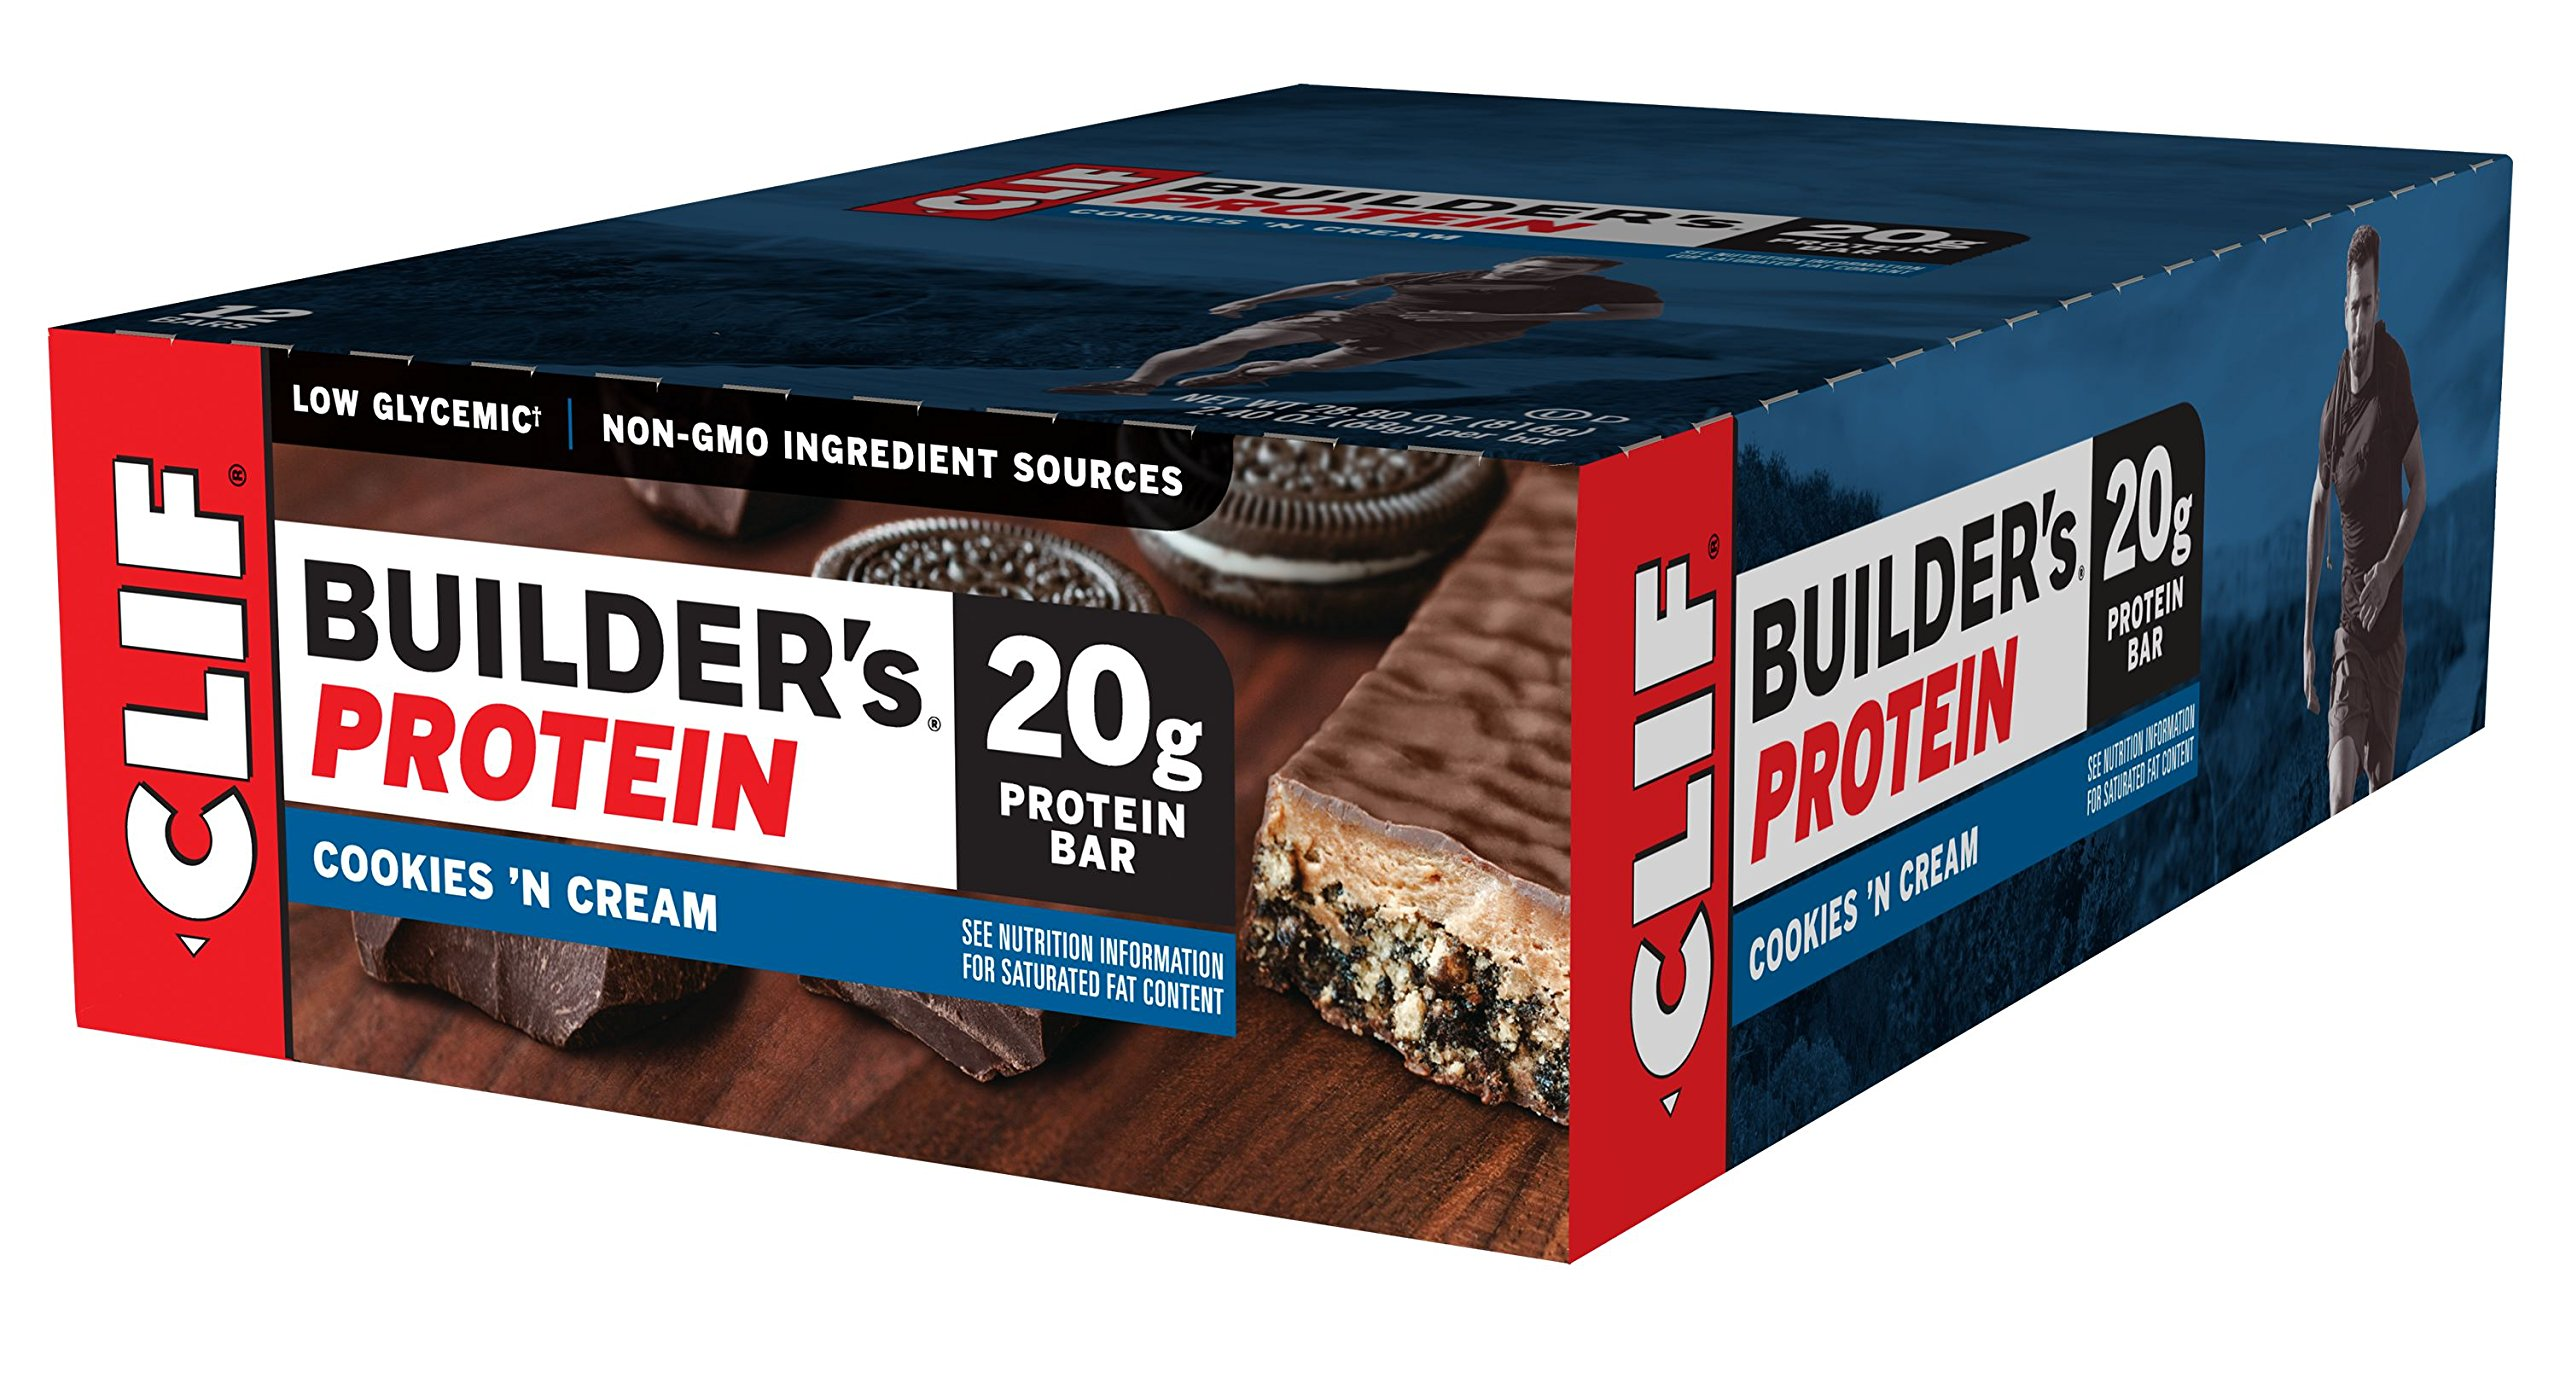 CLIF BUILDER'S - Protein Bar - Cookies and Cream - 2.4 Ounce Non-GMO Bar, 12 Count